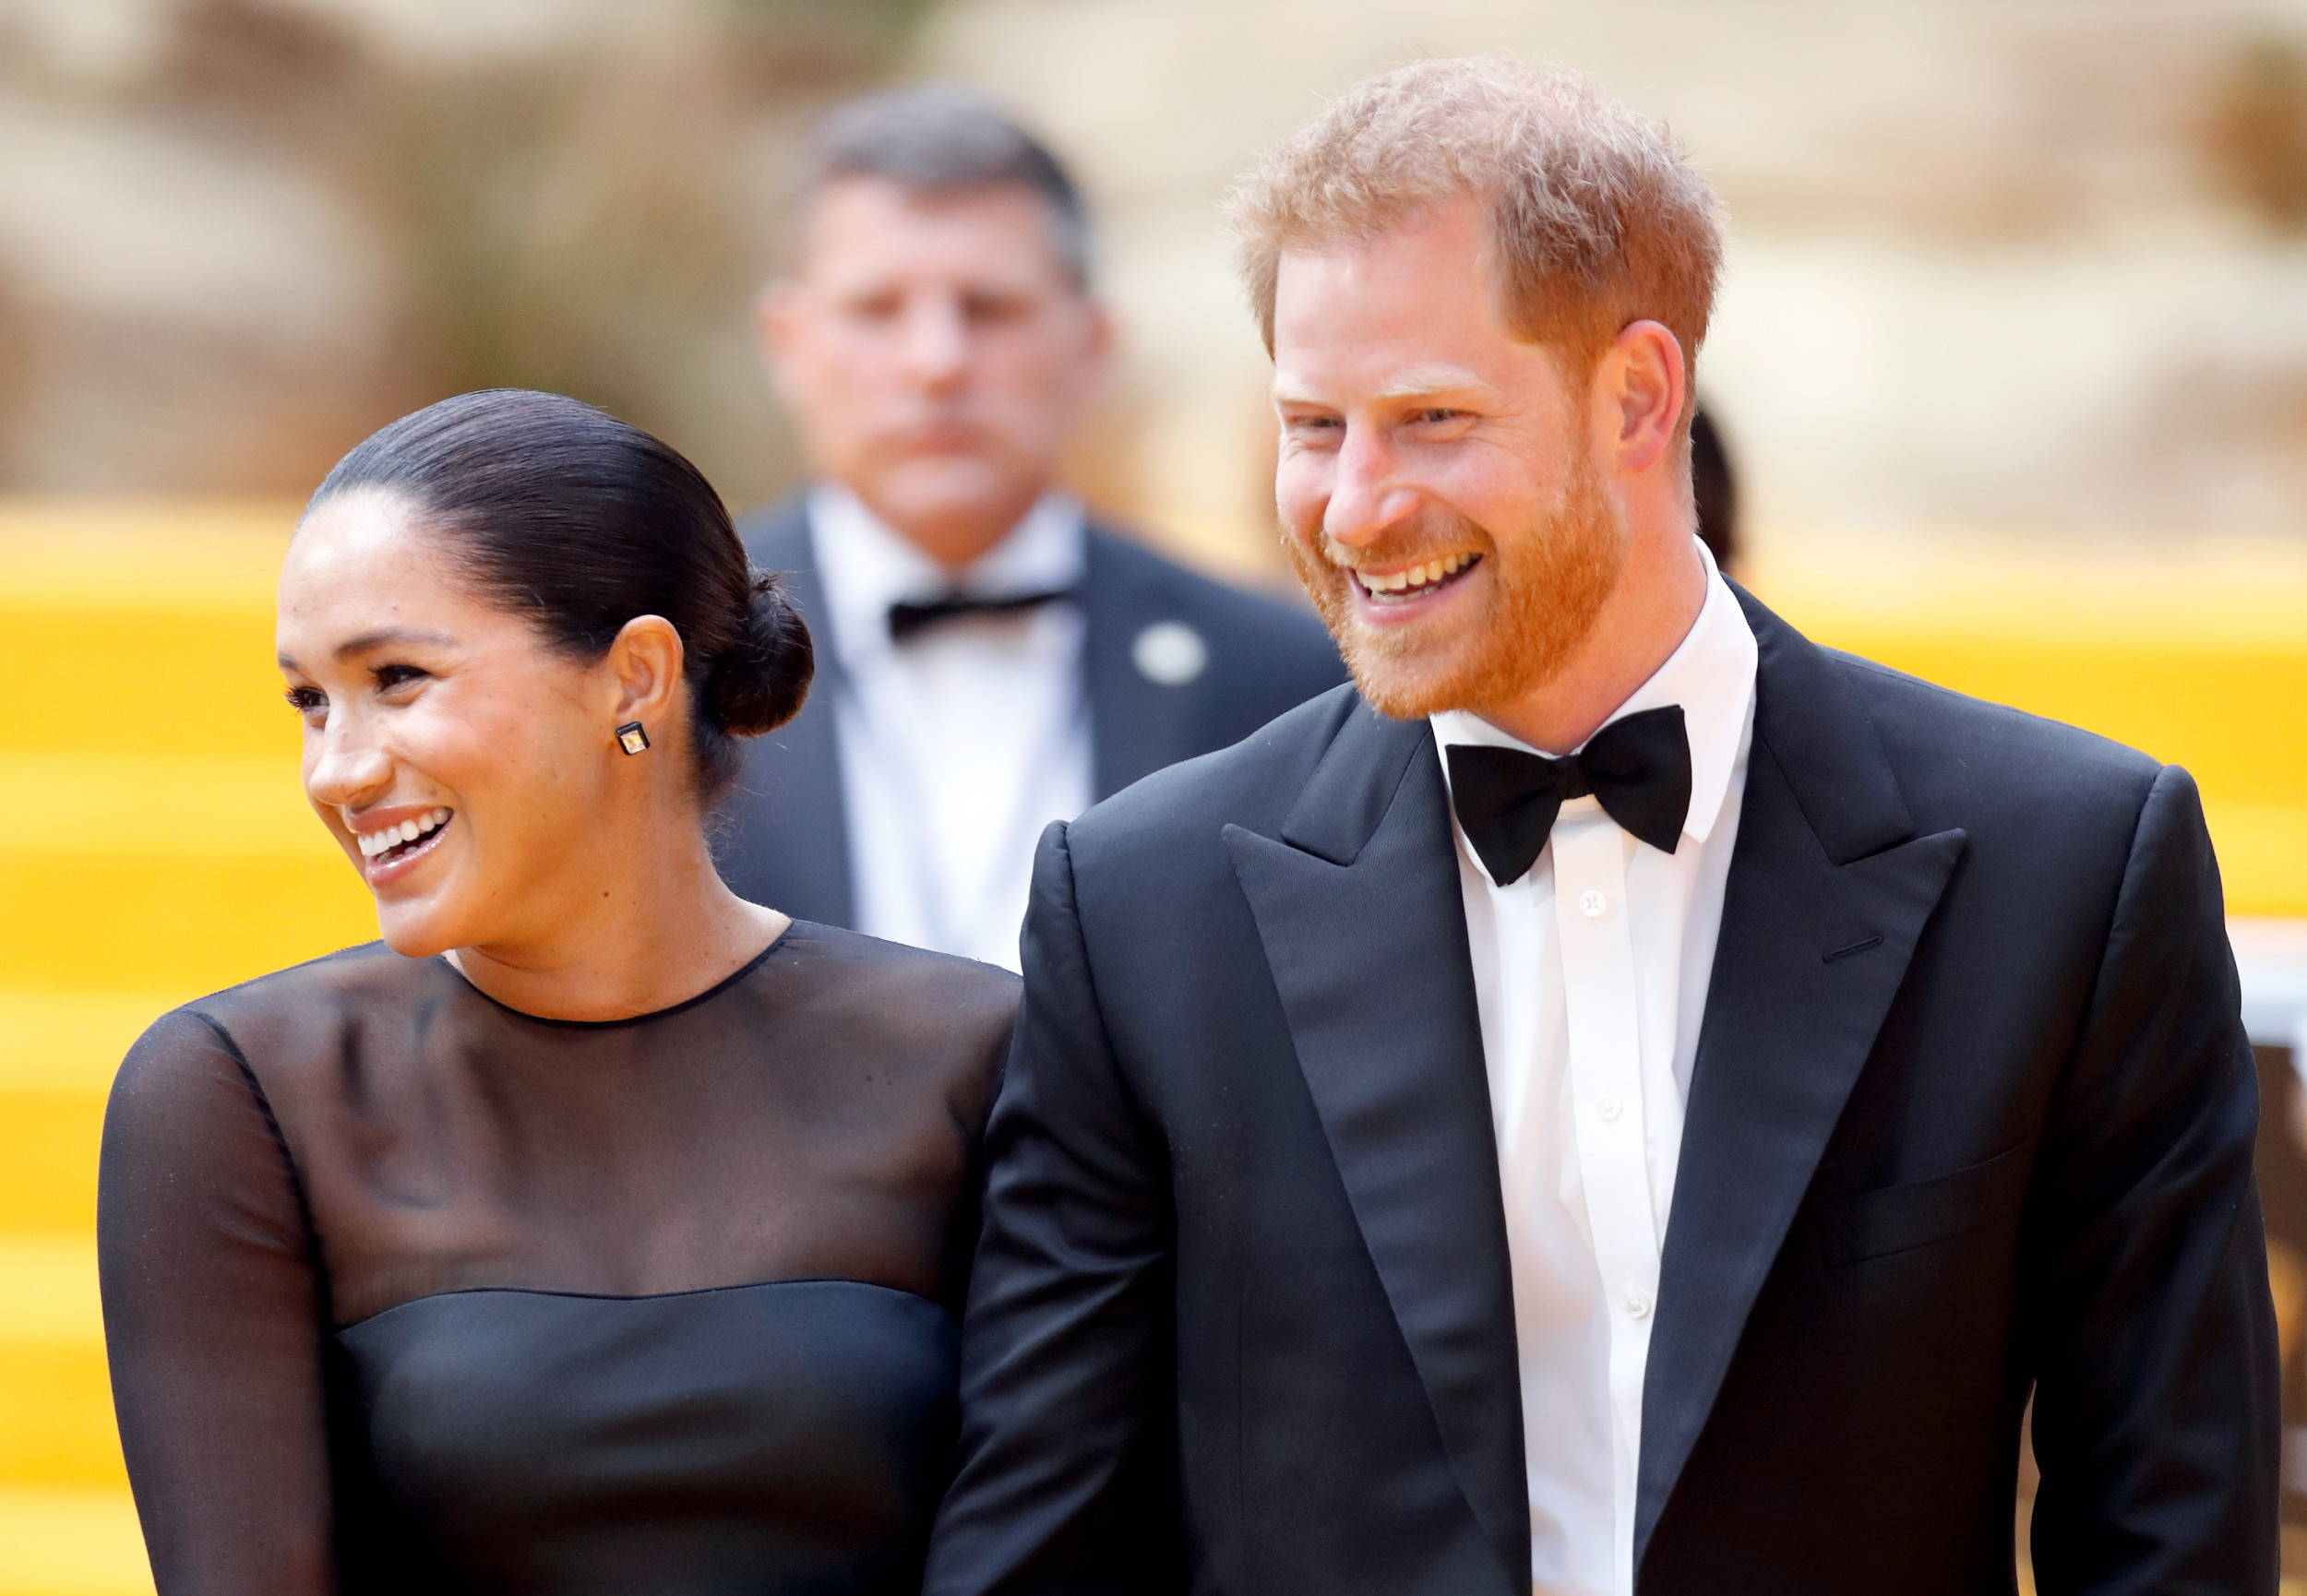 Prince Harry Turns 35: Facts About the British Royal, His Position In Line to the Throne